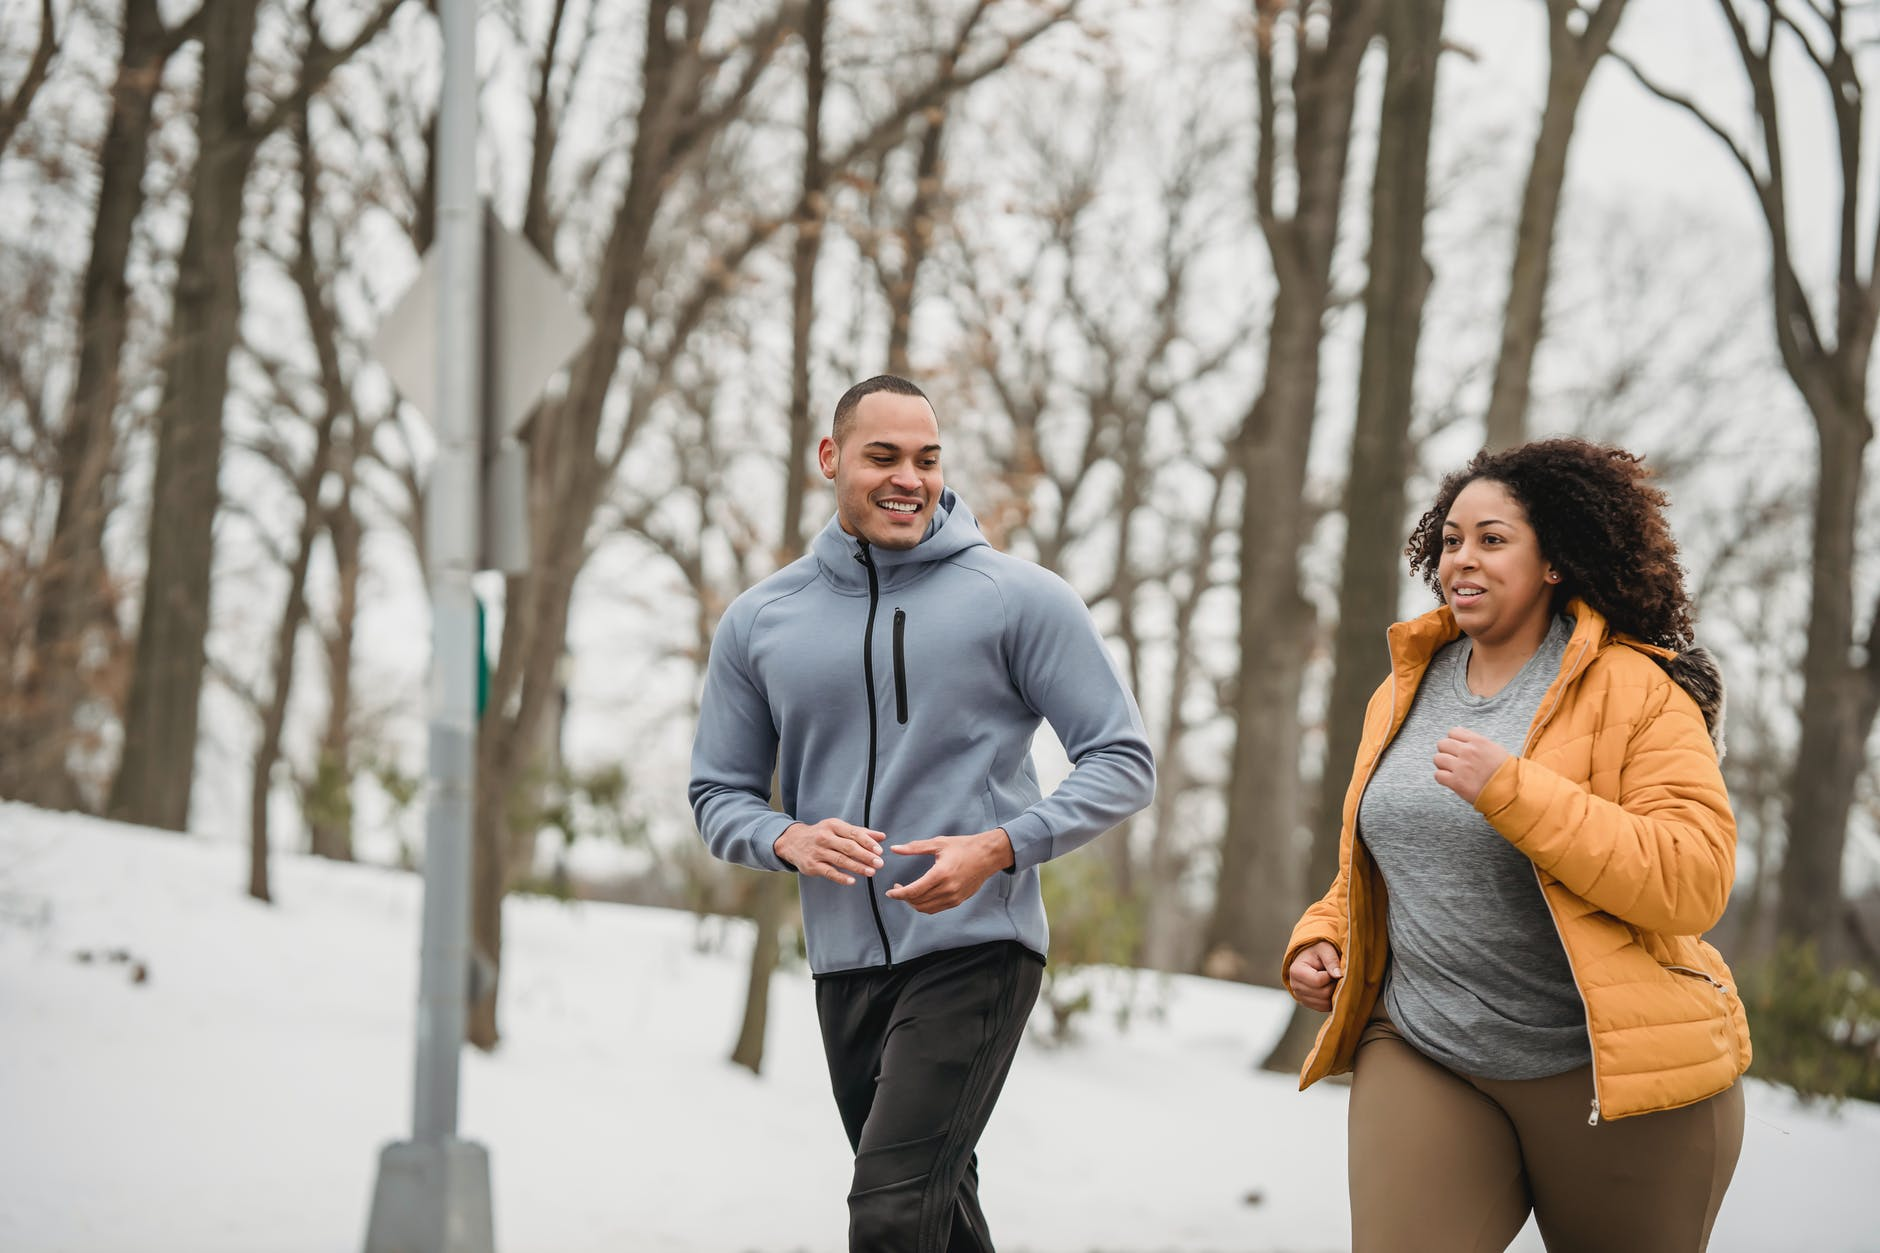 diverse fit man and plump female running in snowy park